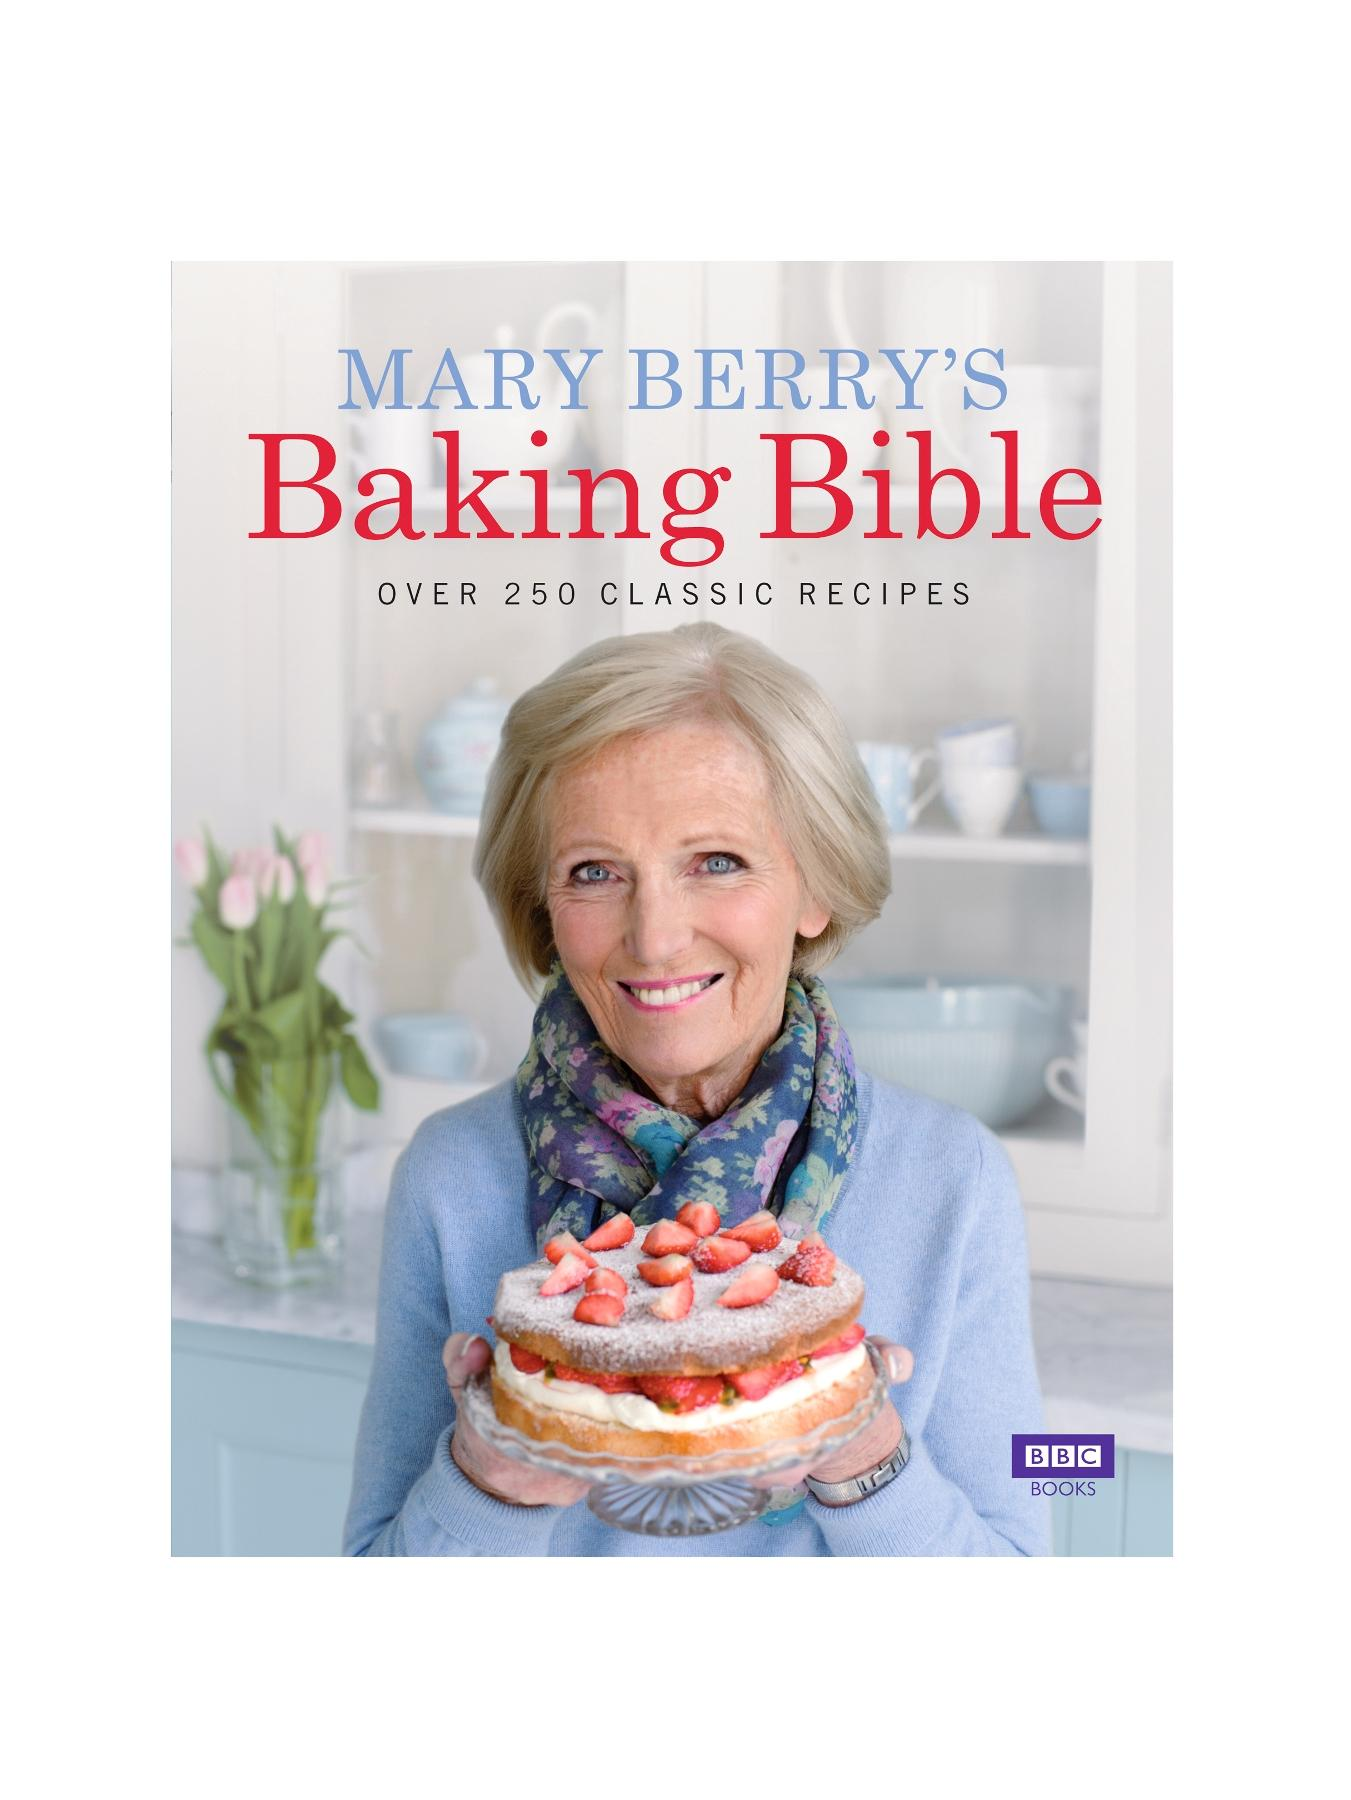 Mary Berry's Baking Bible - By Mary Berry (Hardback)